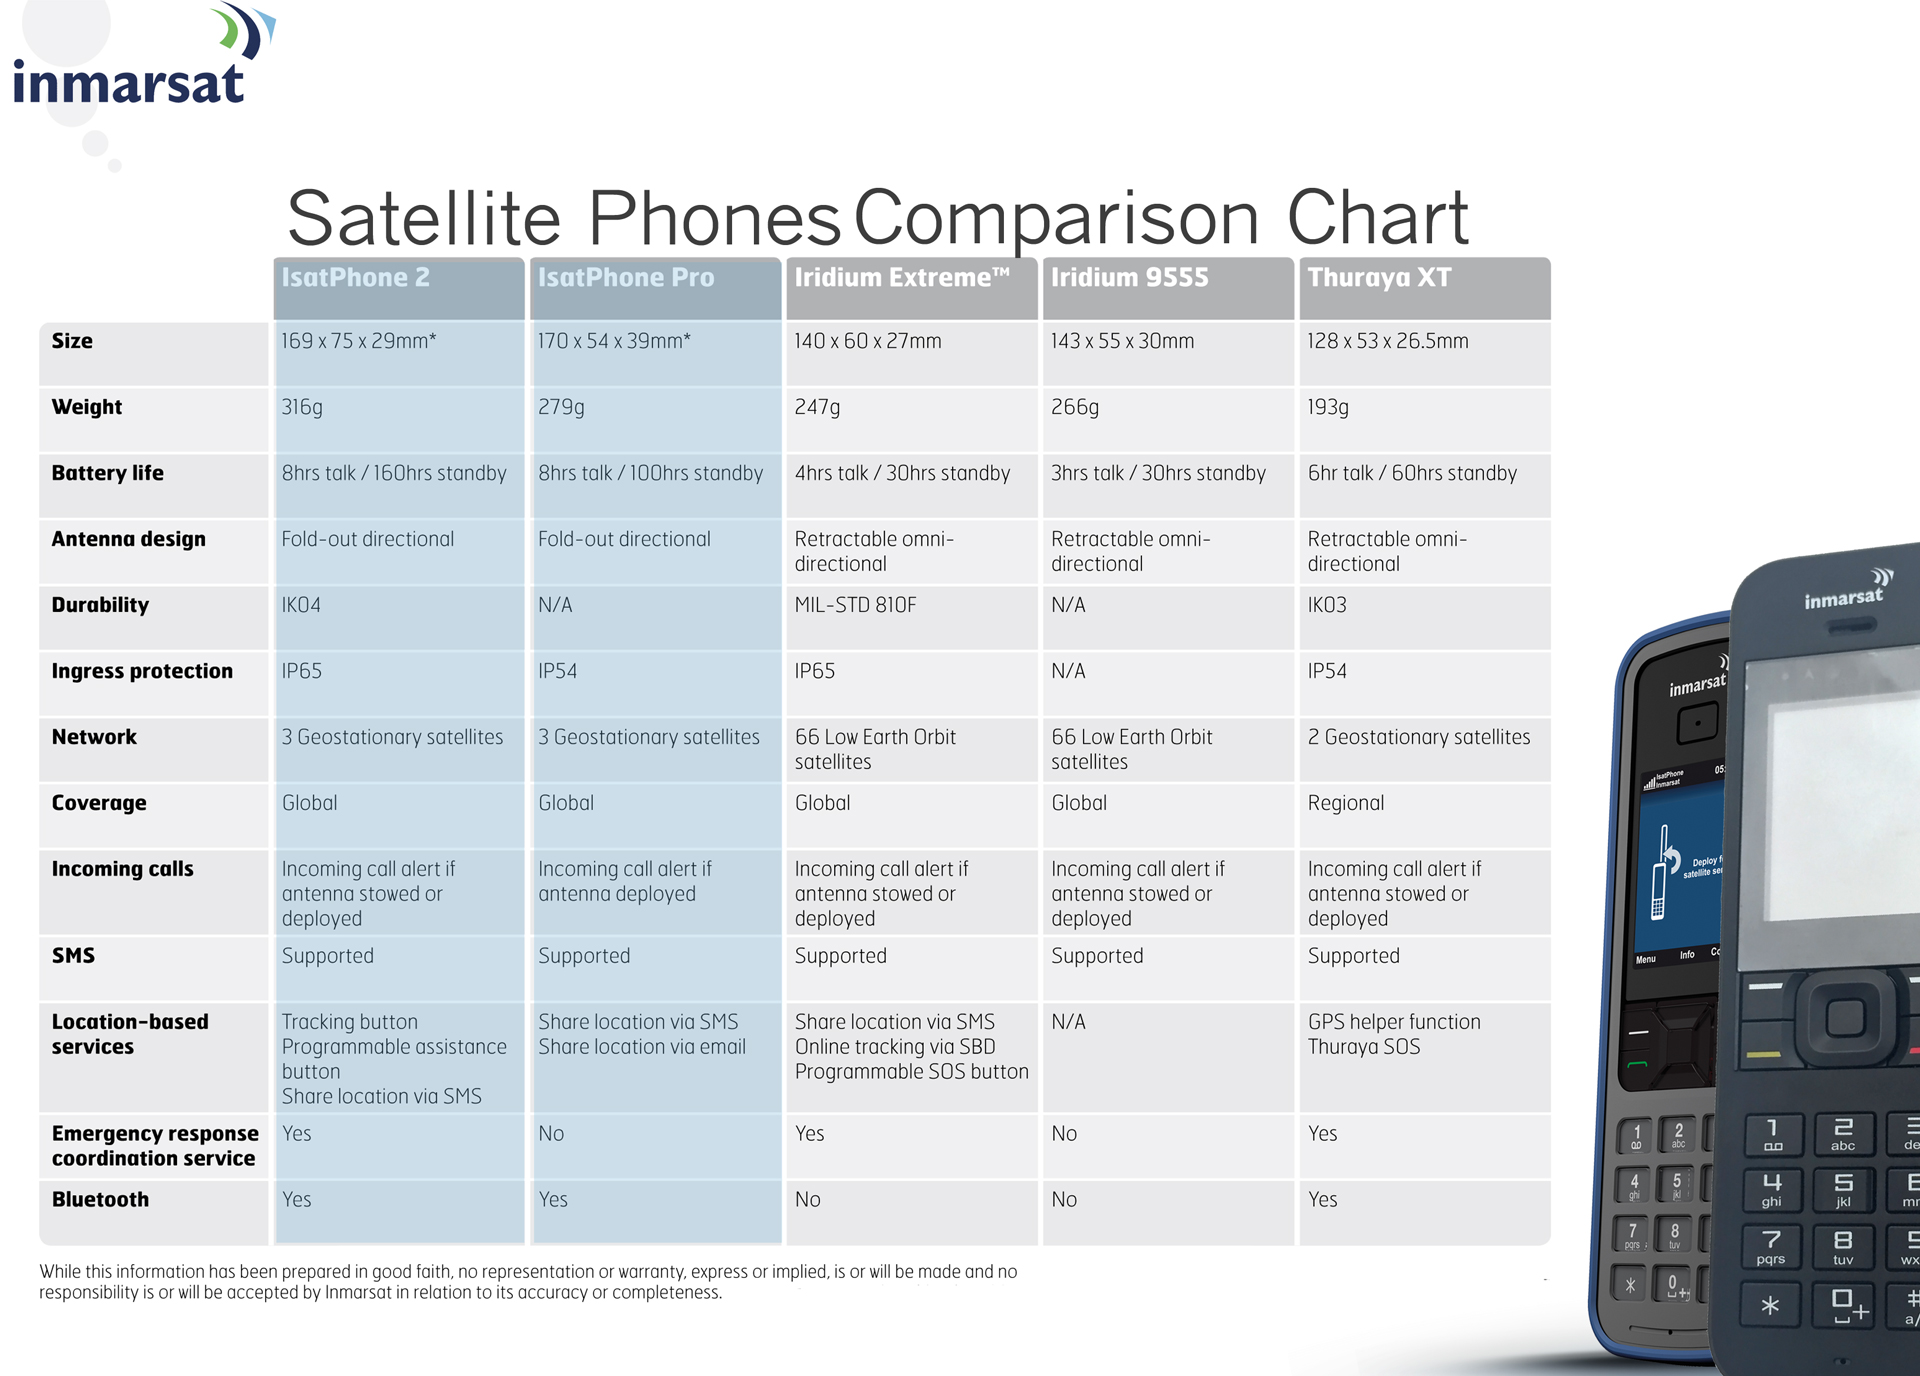 inmarsat-satellite-phones-comparison-chart.jpg